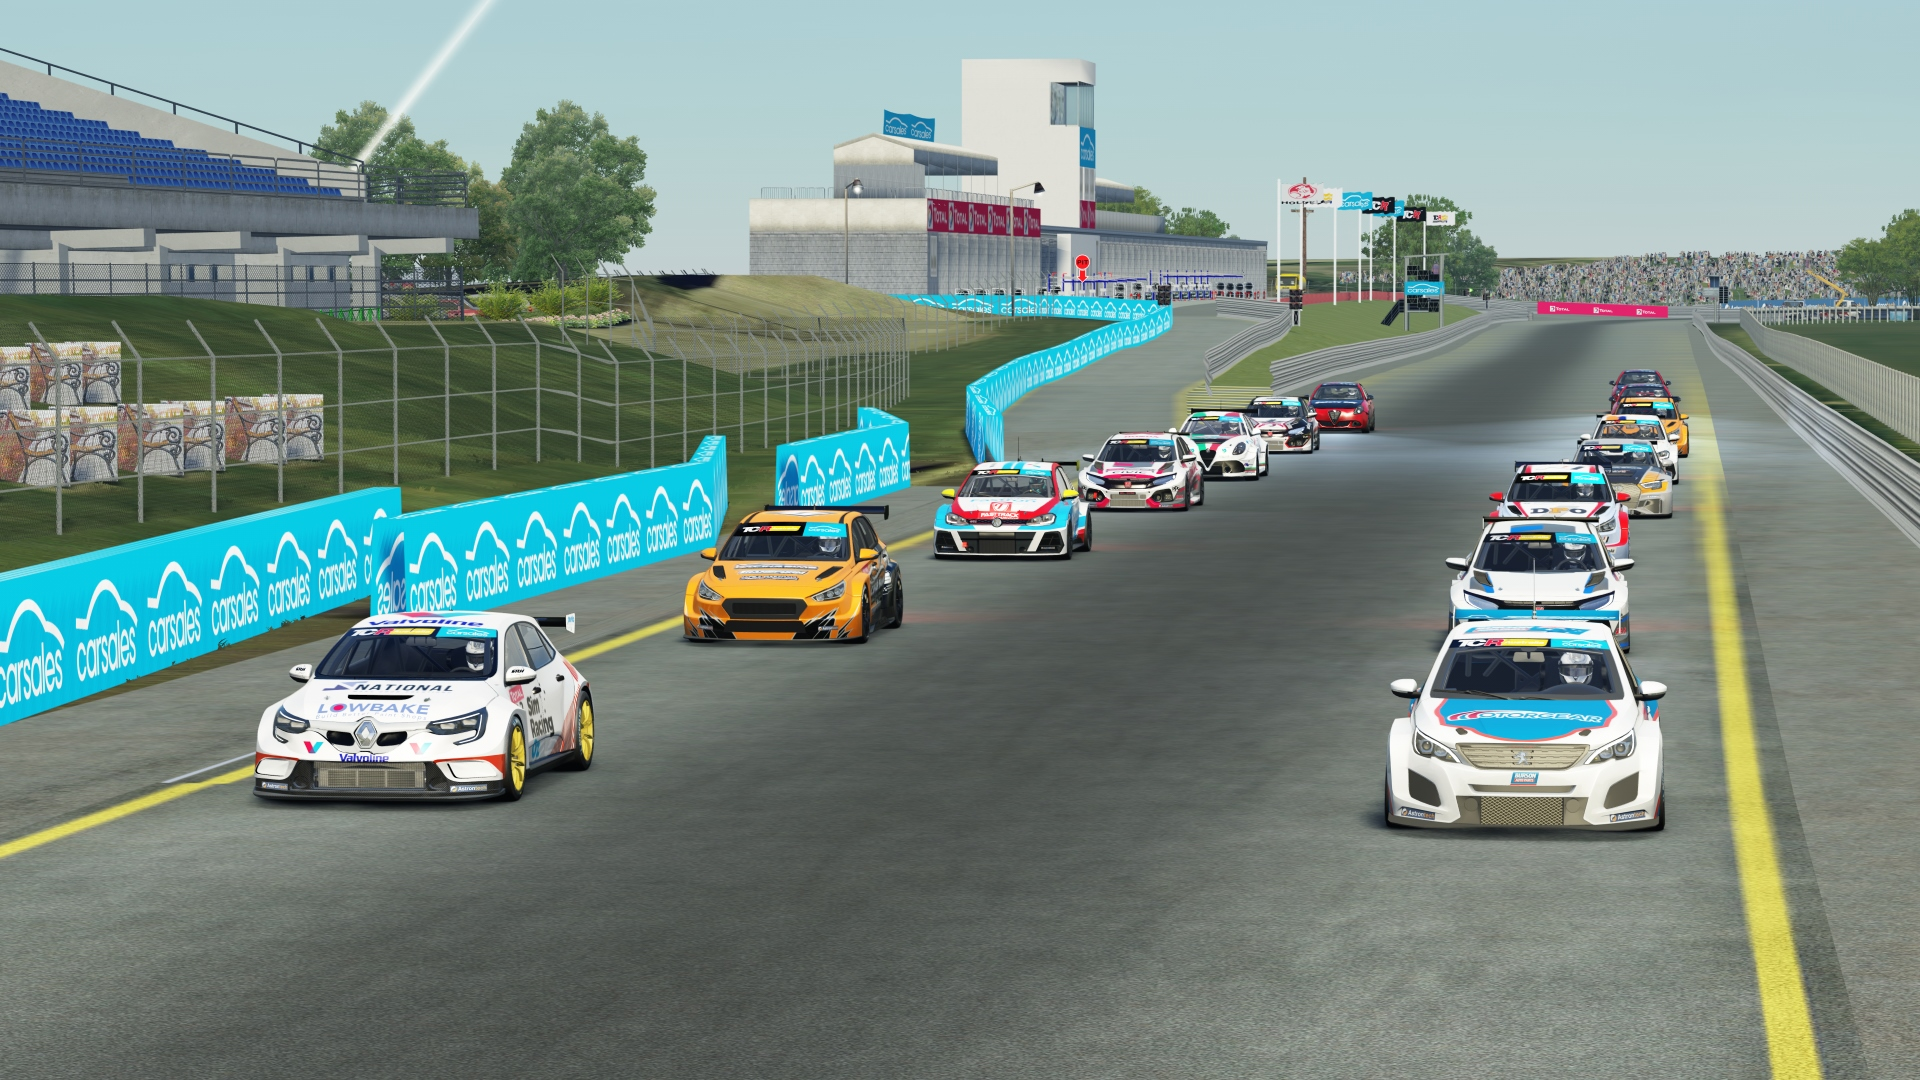 GRM YOUNG GUN CONTINUES STRONG FORM IN TCR AUSTRALIA SIMRACING SERIES